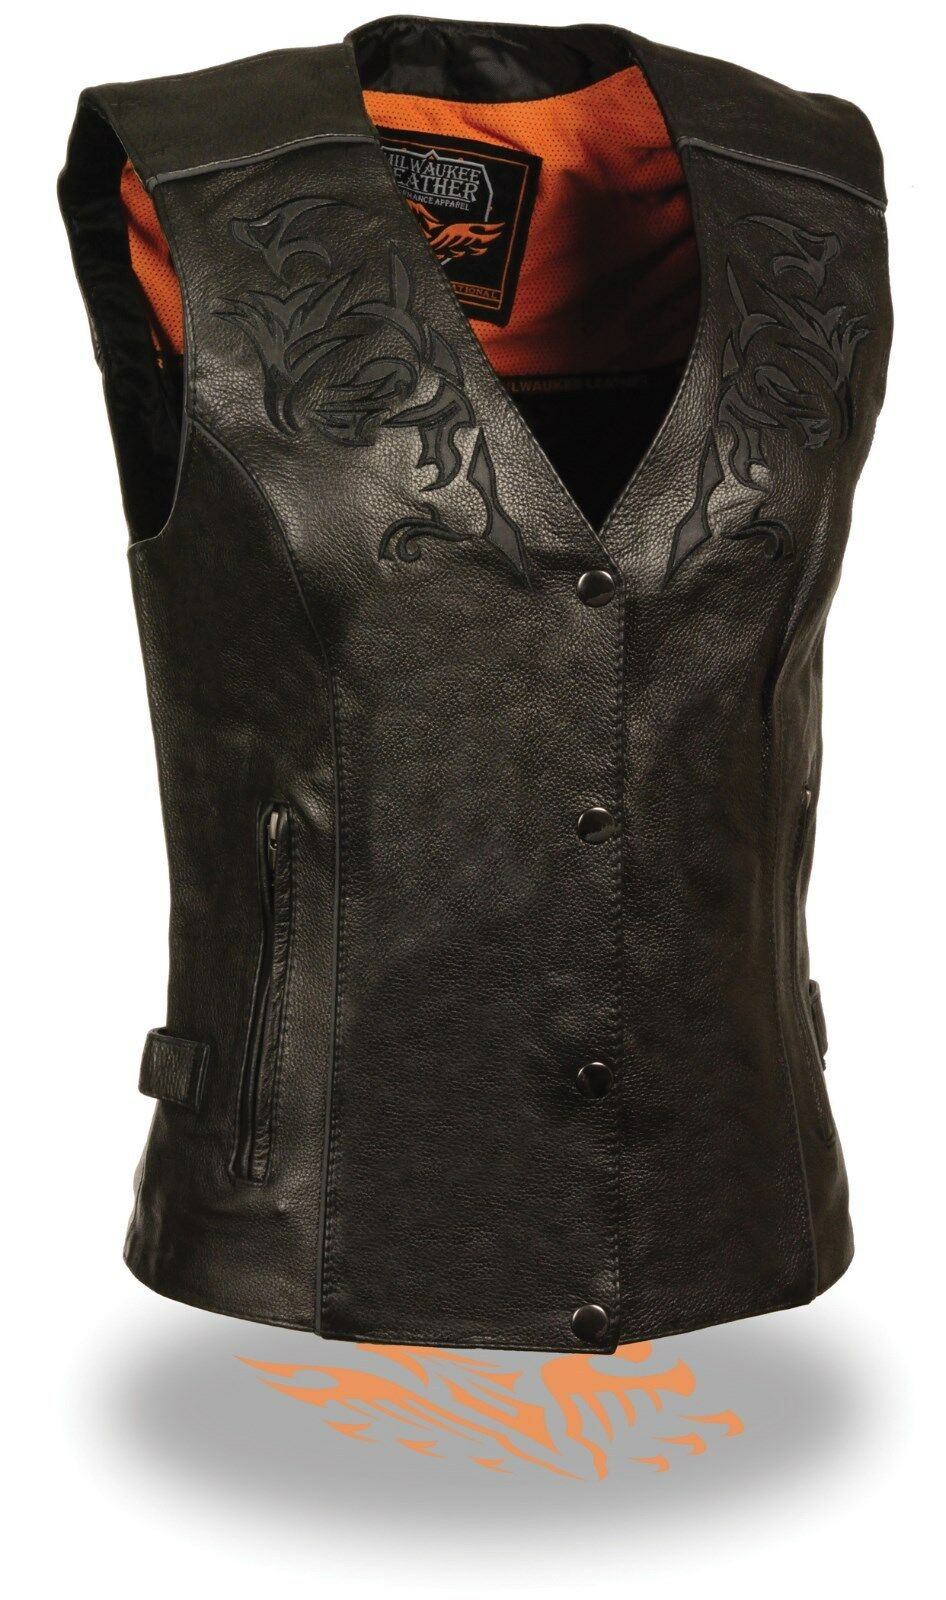 WOMEN'S MOTORCYCLE RIDING BLK LEATHER VEST W REFLECTIVE TRIBAL DESIGN & PIPING